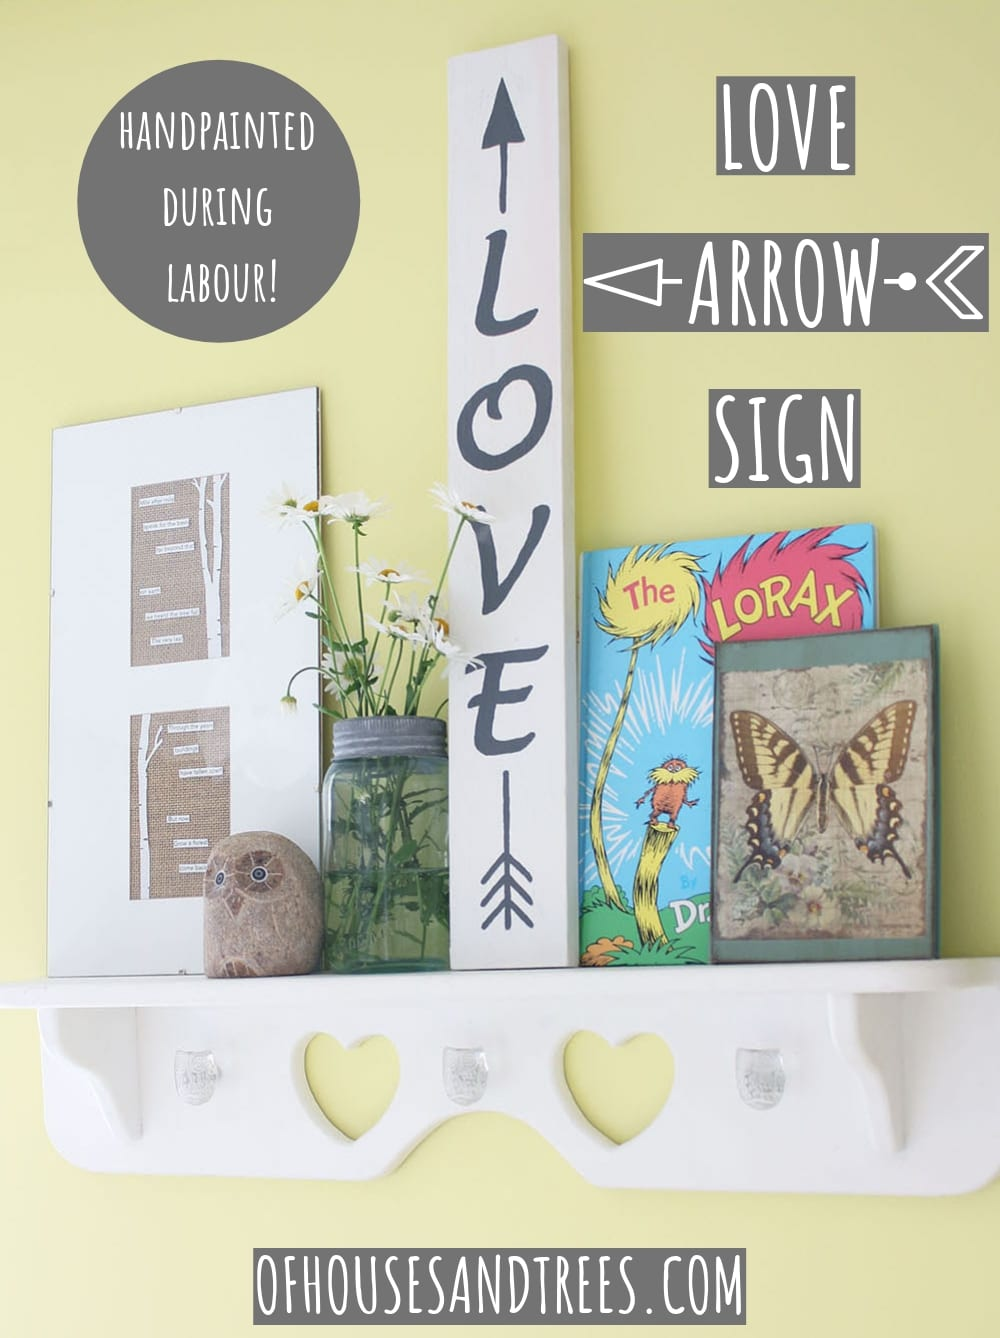 This love arrow sign was handpainted while I was in labour with my second child. Here's how you can make one too! Contractions not required...